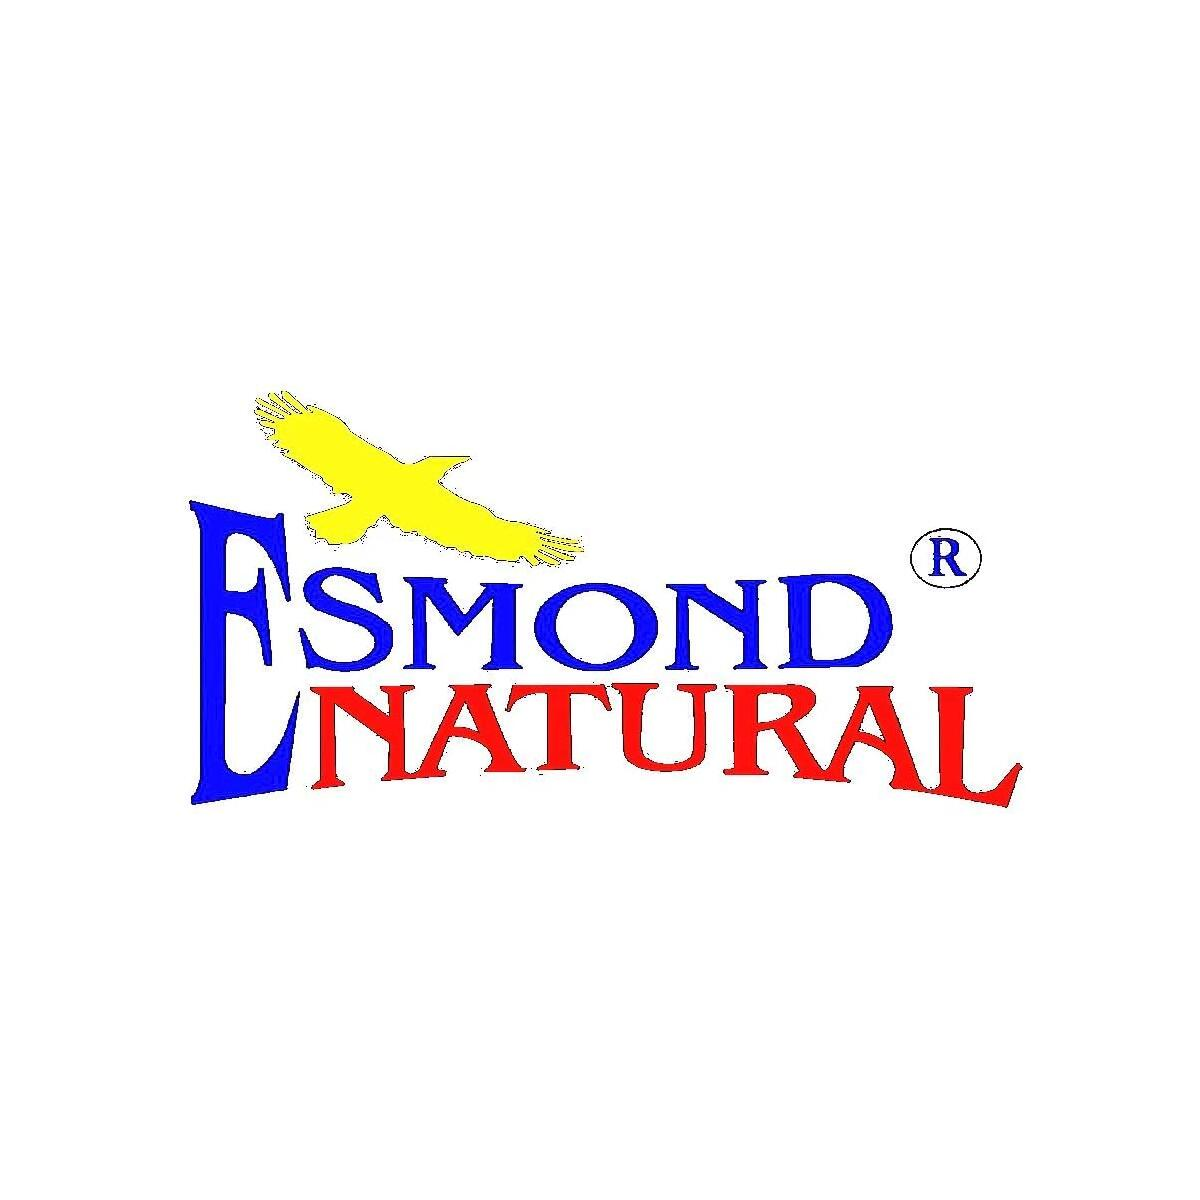 Esmond Natural: Salmon Oil 1000mg (Providing 210mg Omega-3s, Promotes Hearth Health), GMP, Natural Product Assn Certified, Made in USA-1000mg, 90 Softgels